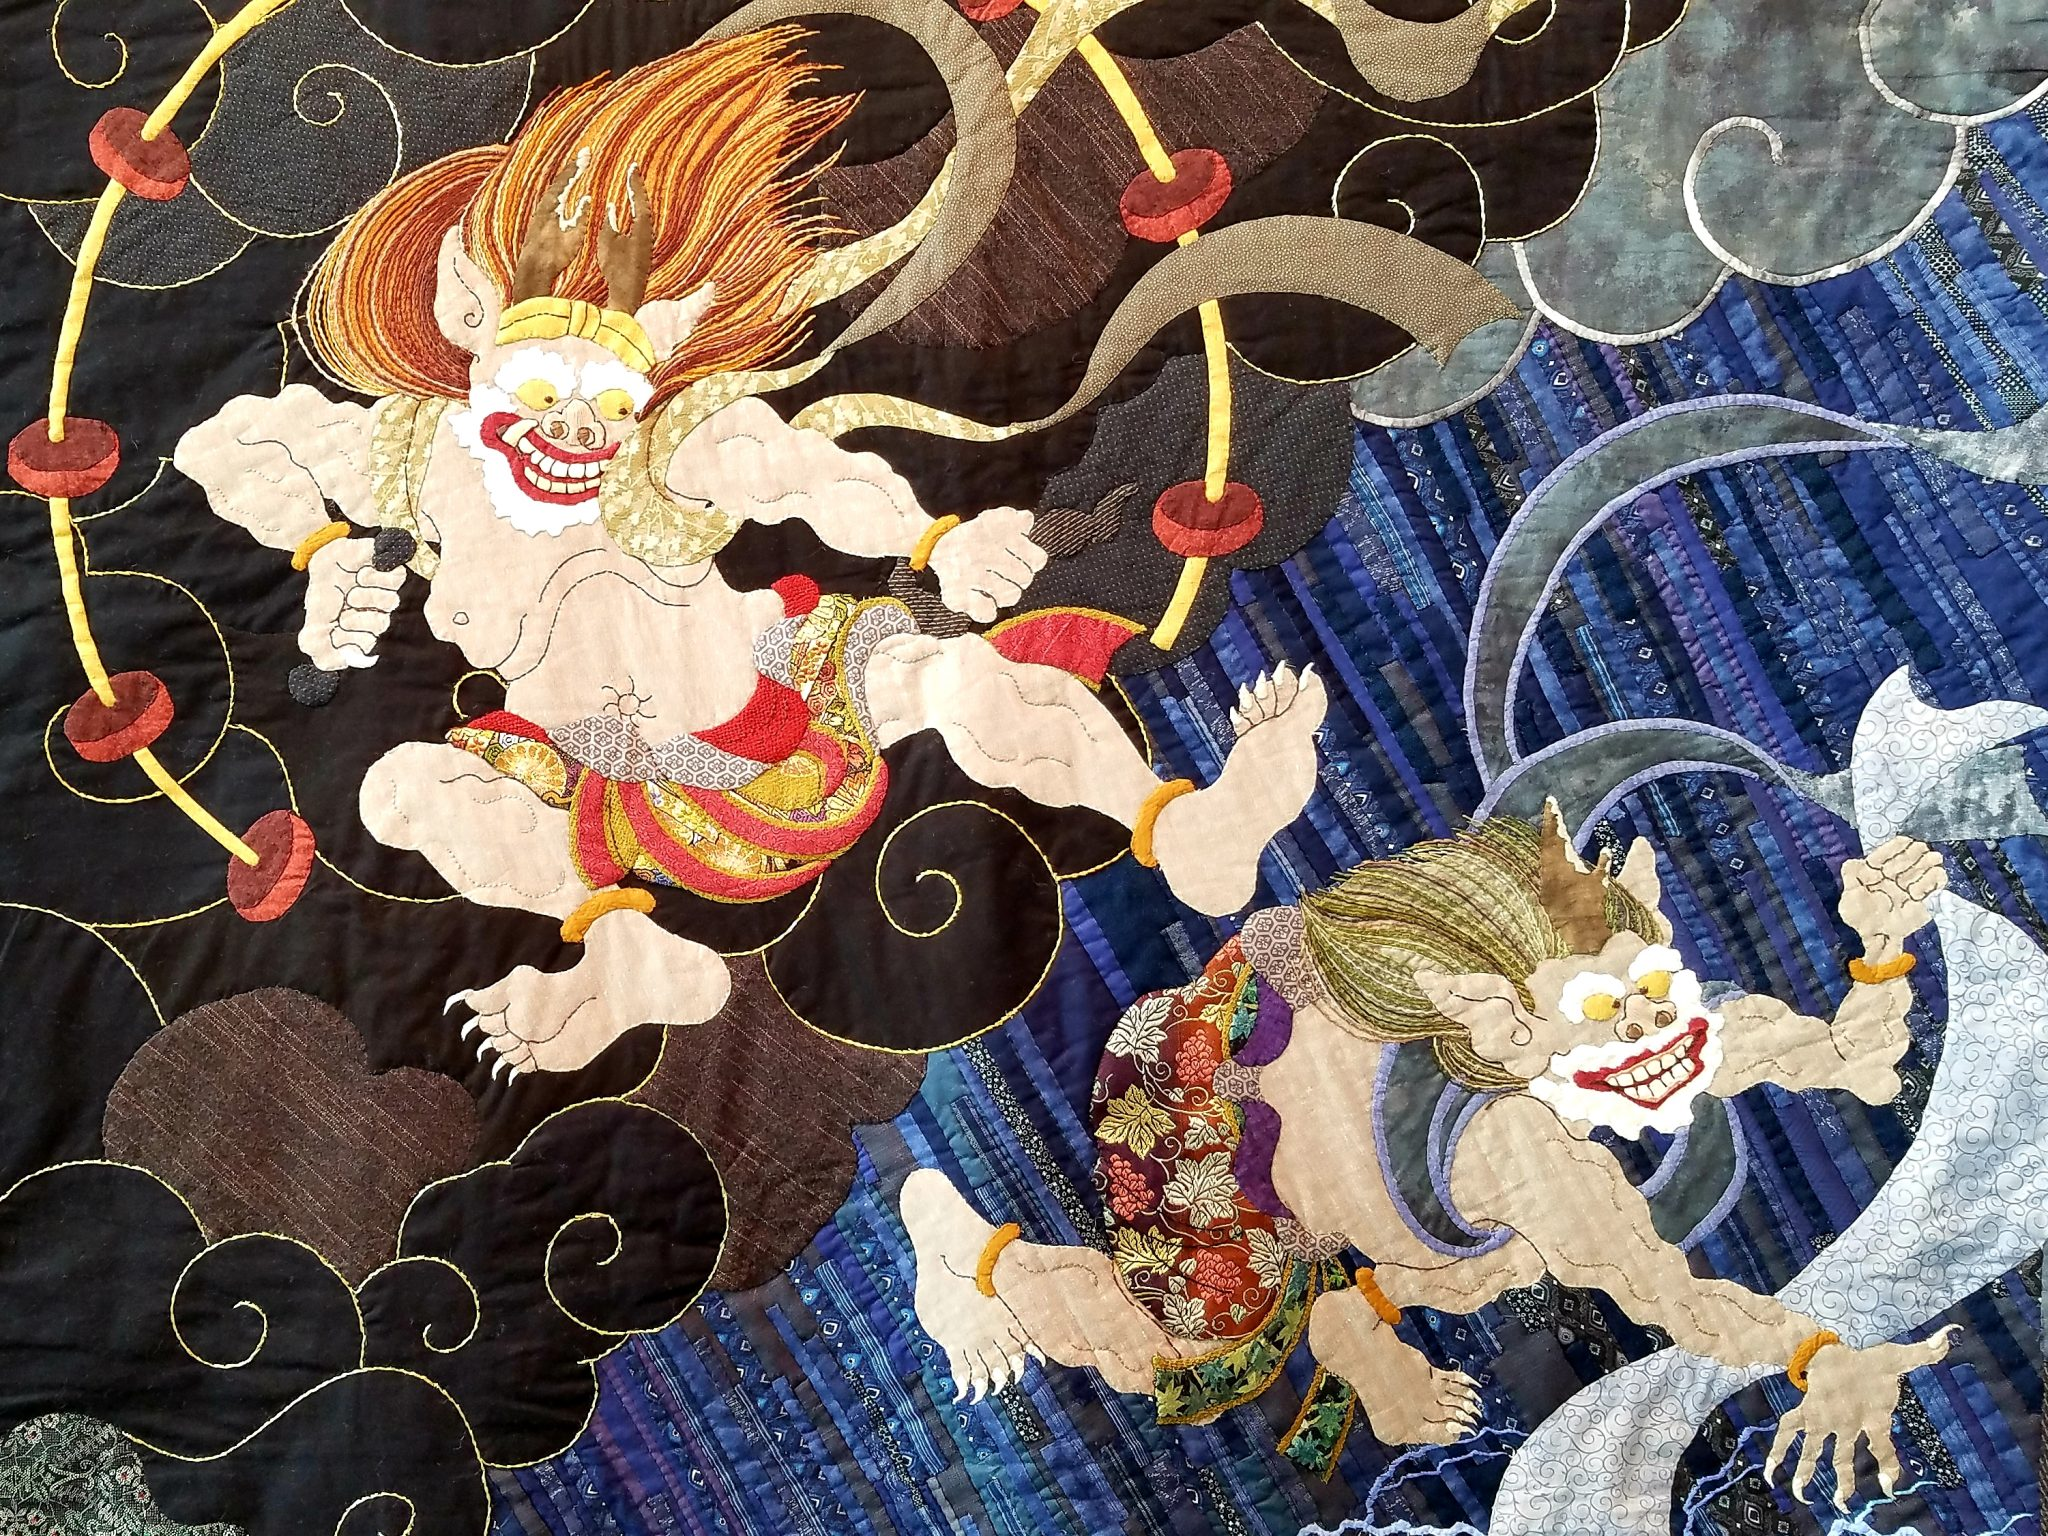 'Fujin・Raijin - Wing God and Thunder God' by Yoko Sekita from the 19th Tokyo International Great Quilt Festival